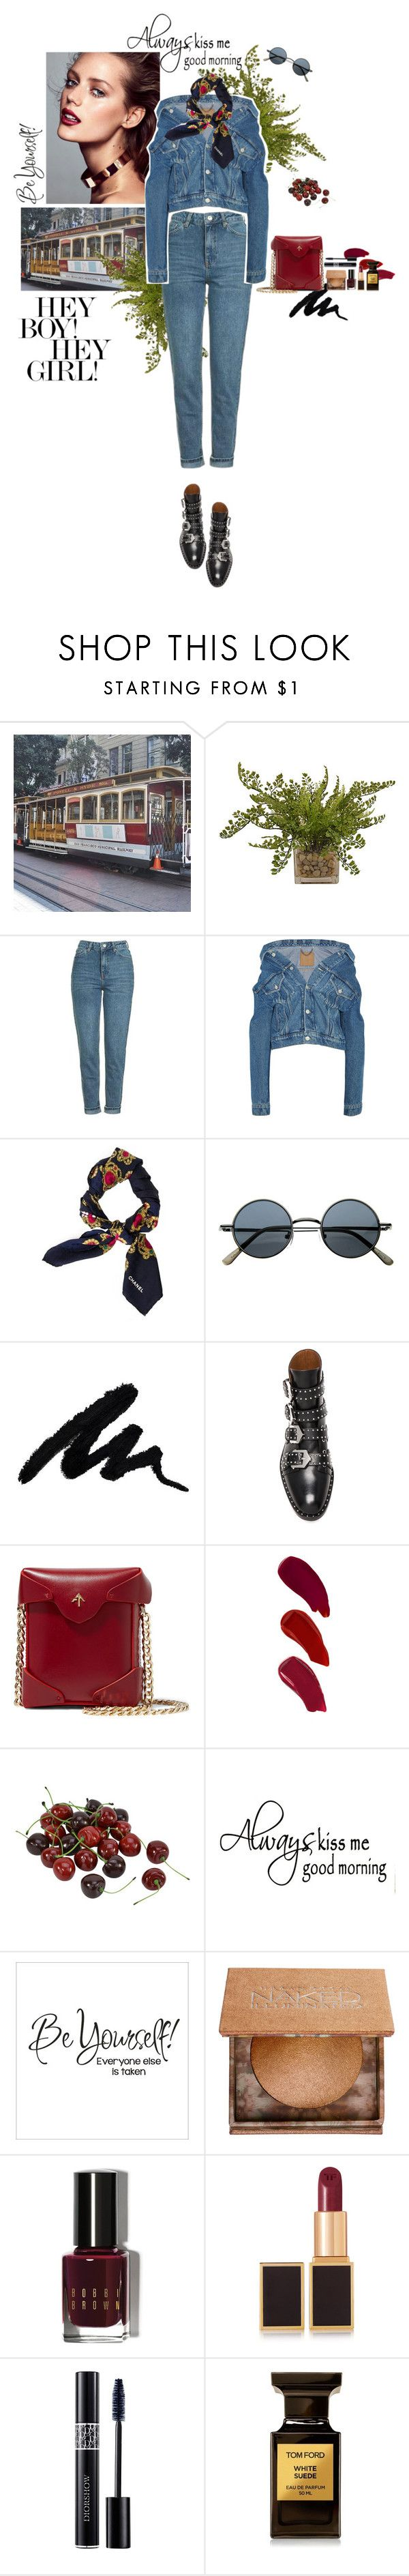 """""""sexy cherry"""" by wildmiu ❤ liked on Polyvore featuring The French Bee, Topshop, Balenciaga, Chanel, Givenchy, MANU Atelier, Ellis Faas, Urban Decay, Bobbi Brown Cosmetics and Tom Ford"""